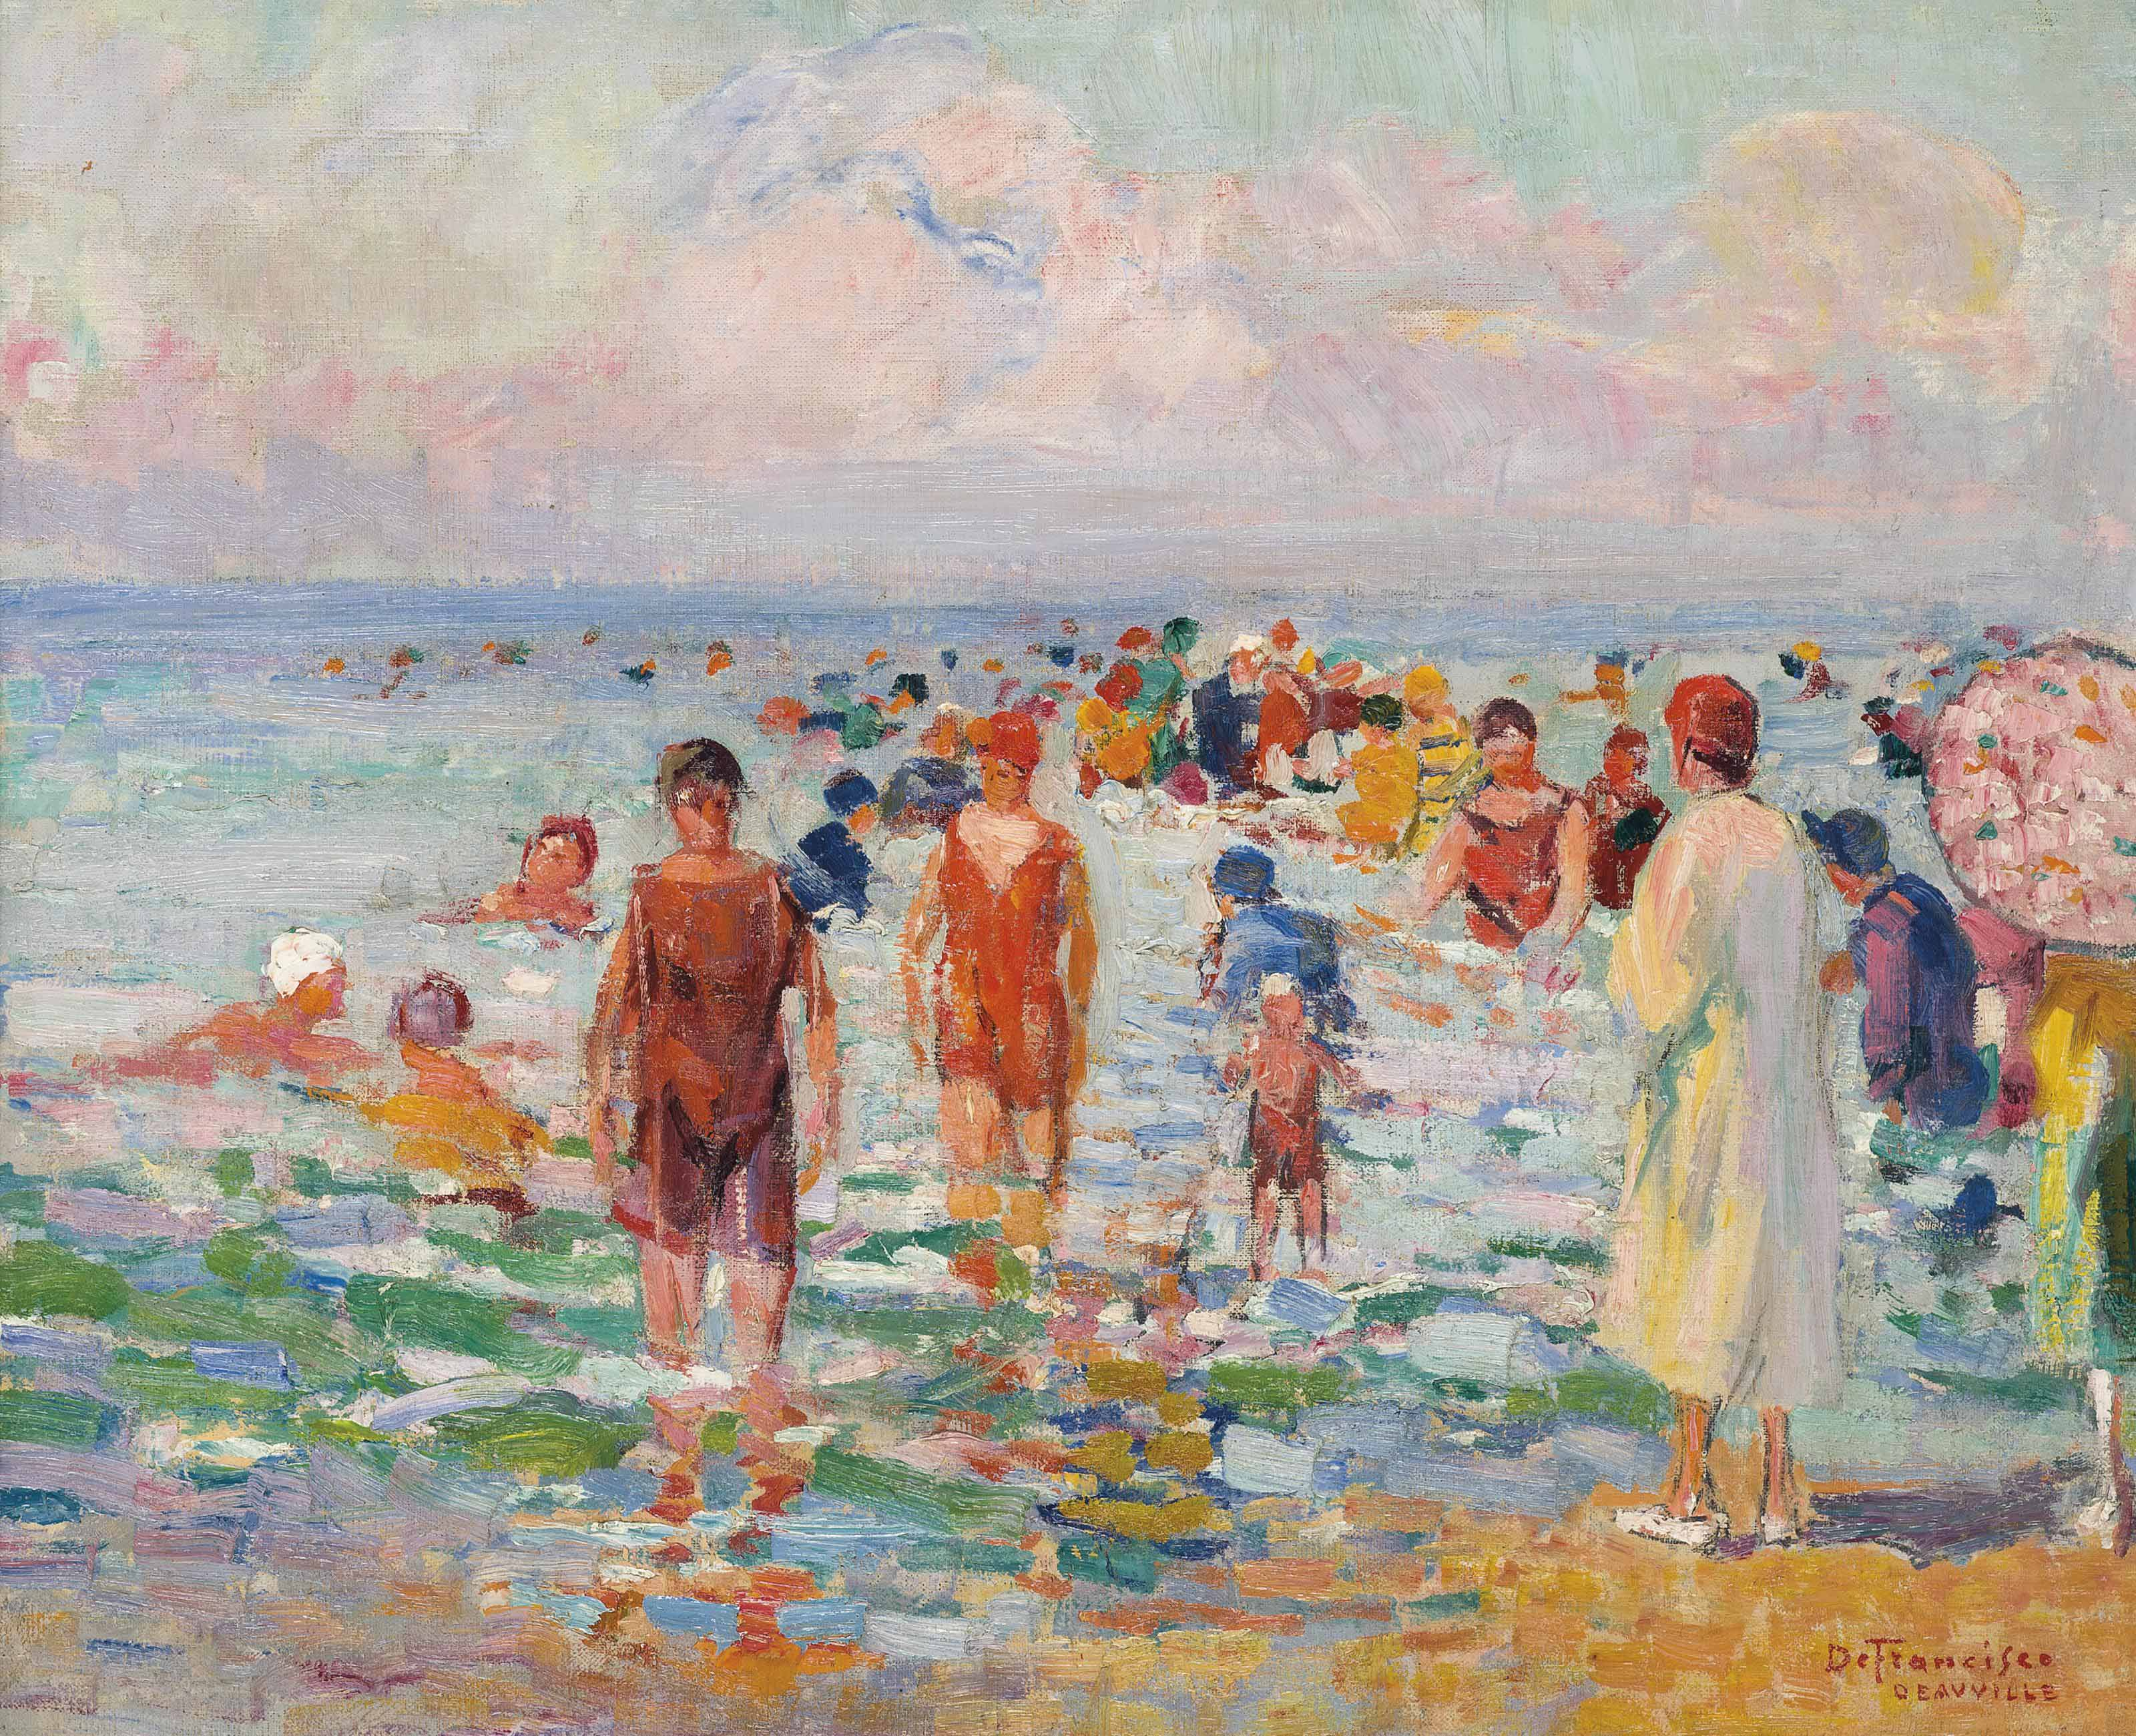 Baigneuses, Deauville